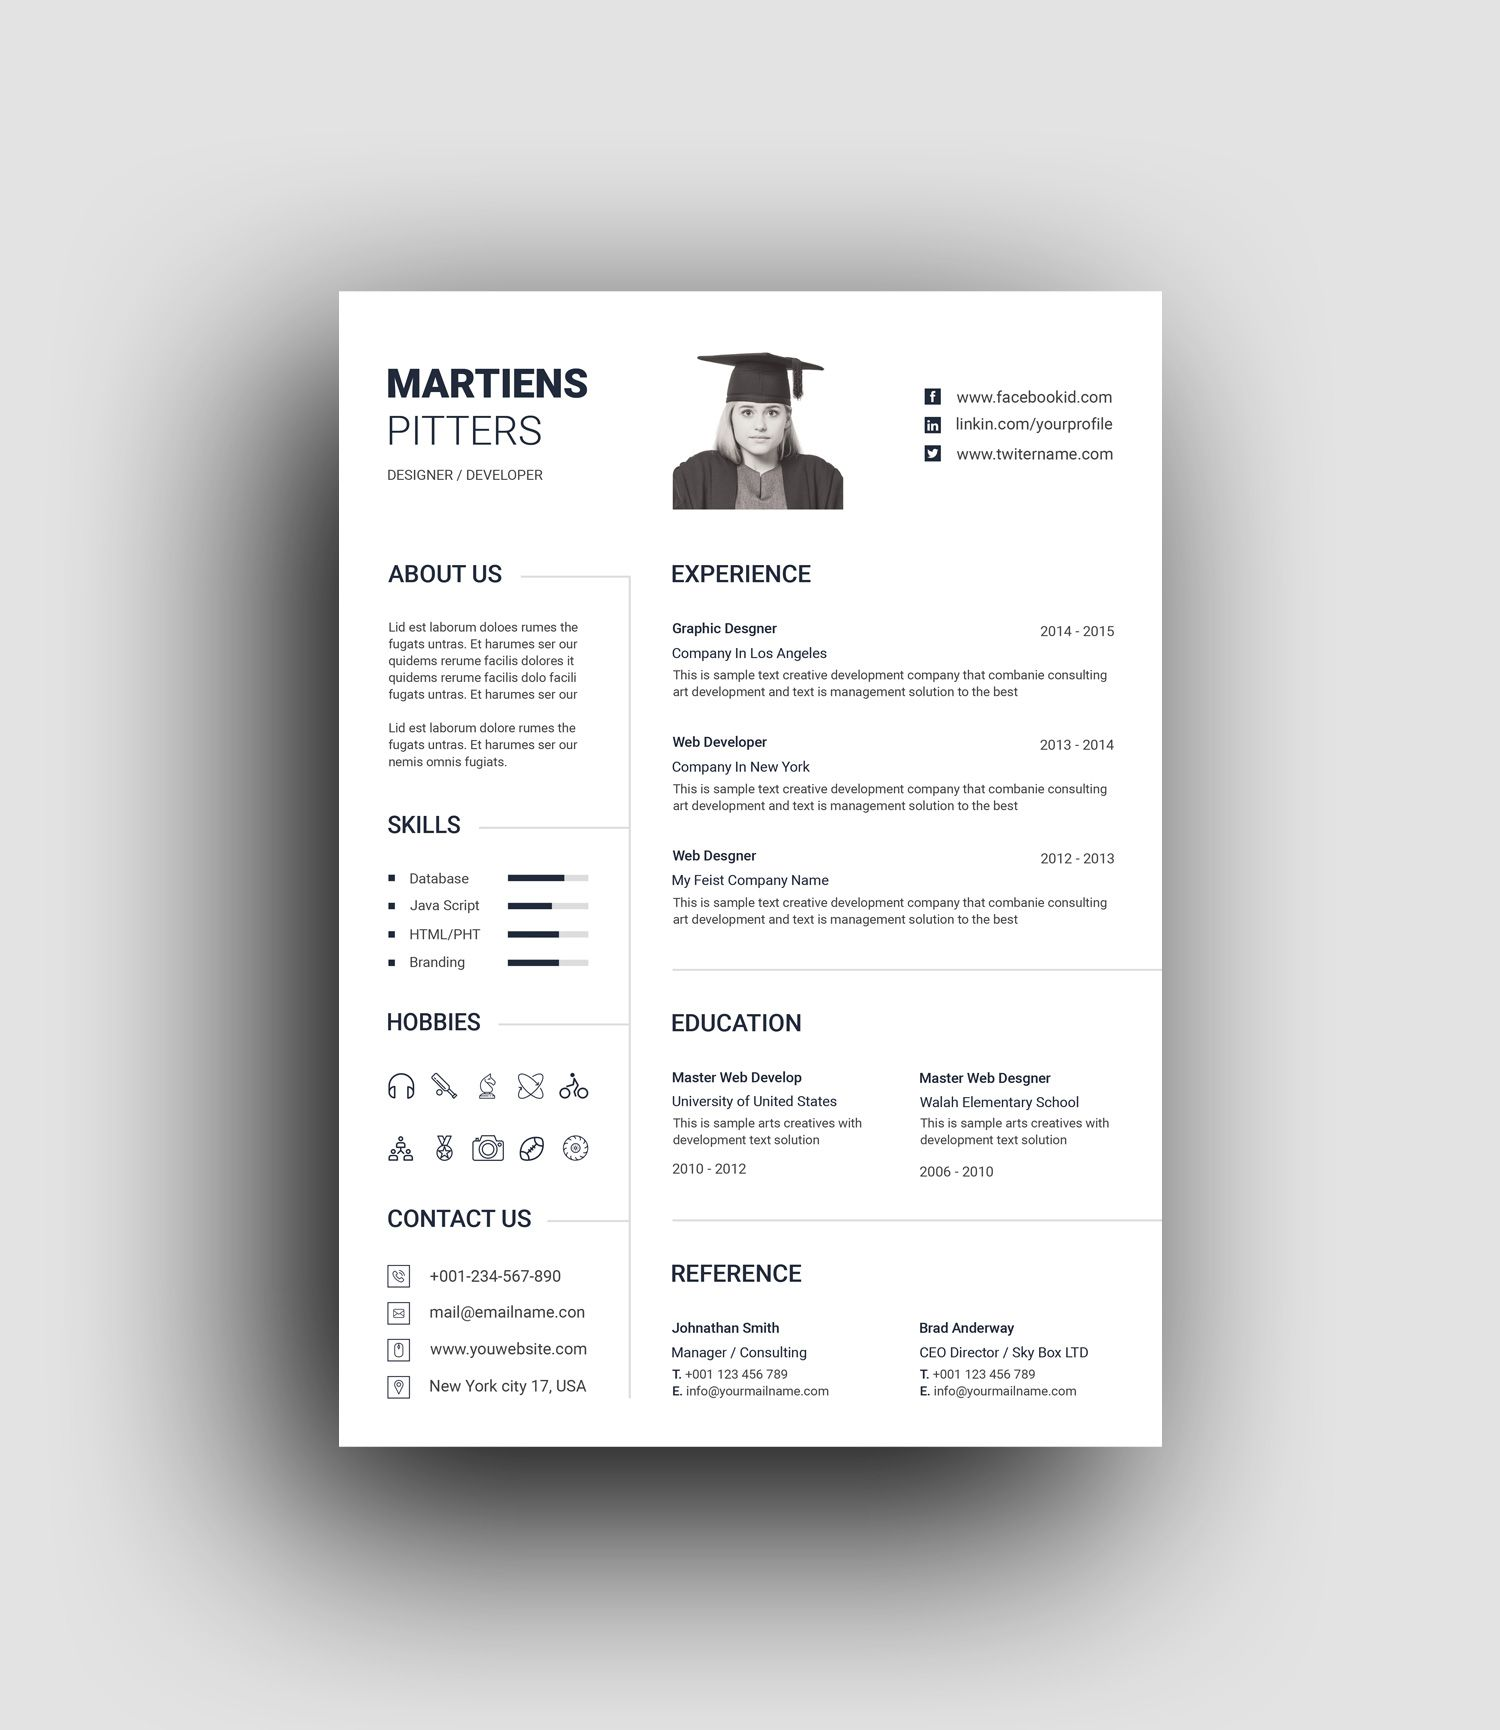 Minimalist Professional Resume Template - Resume template professional, Resume template, Resume design template, Resume templates, Microsoft resume templates, Resume - Minimalist Professional Resume Template  The perfect way to make the best impression  Strong typographic structure and very easy to use and customize    The resume have a very organized  The resume template is in Photoshop PSD and MS Word DOCX formats